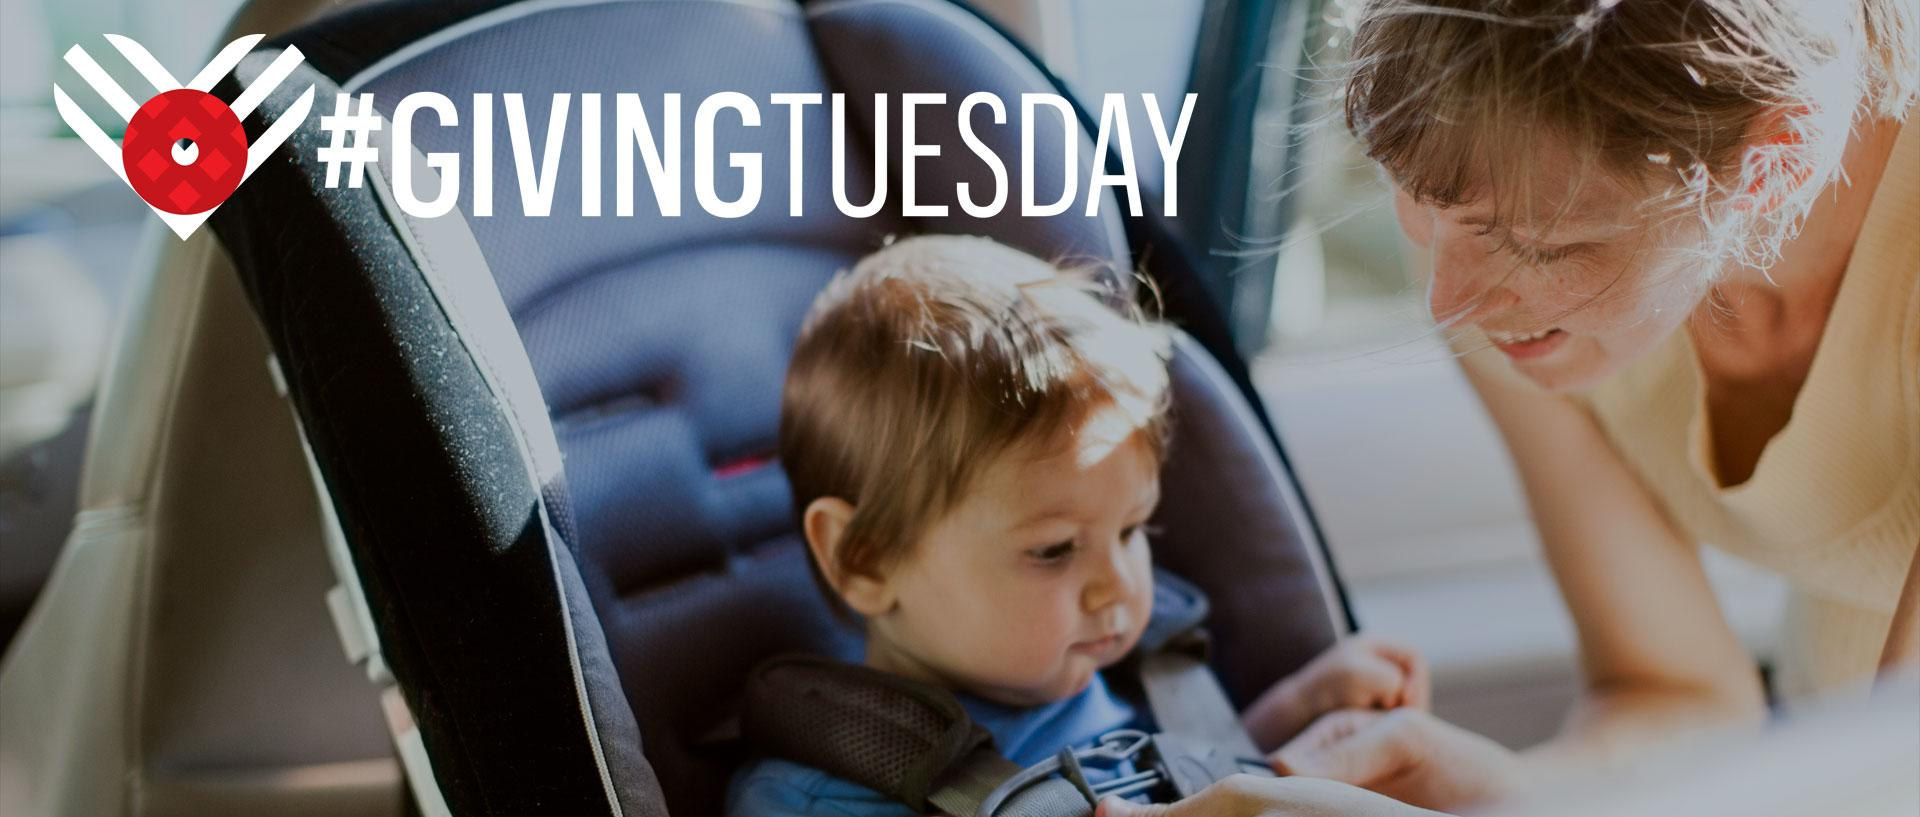 Giving Tuesday Encourages Philanthropy During the Holiday Season